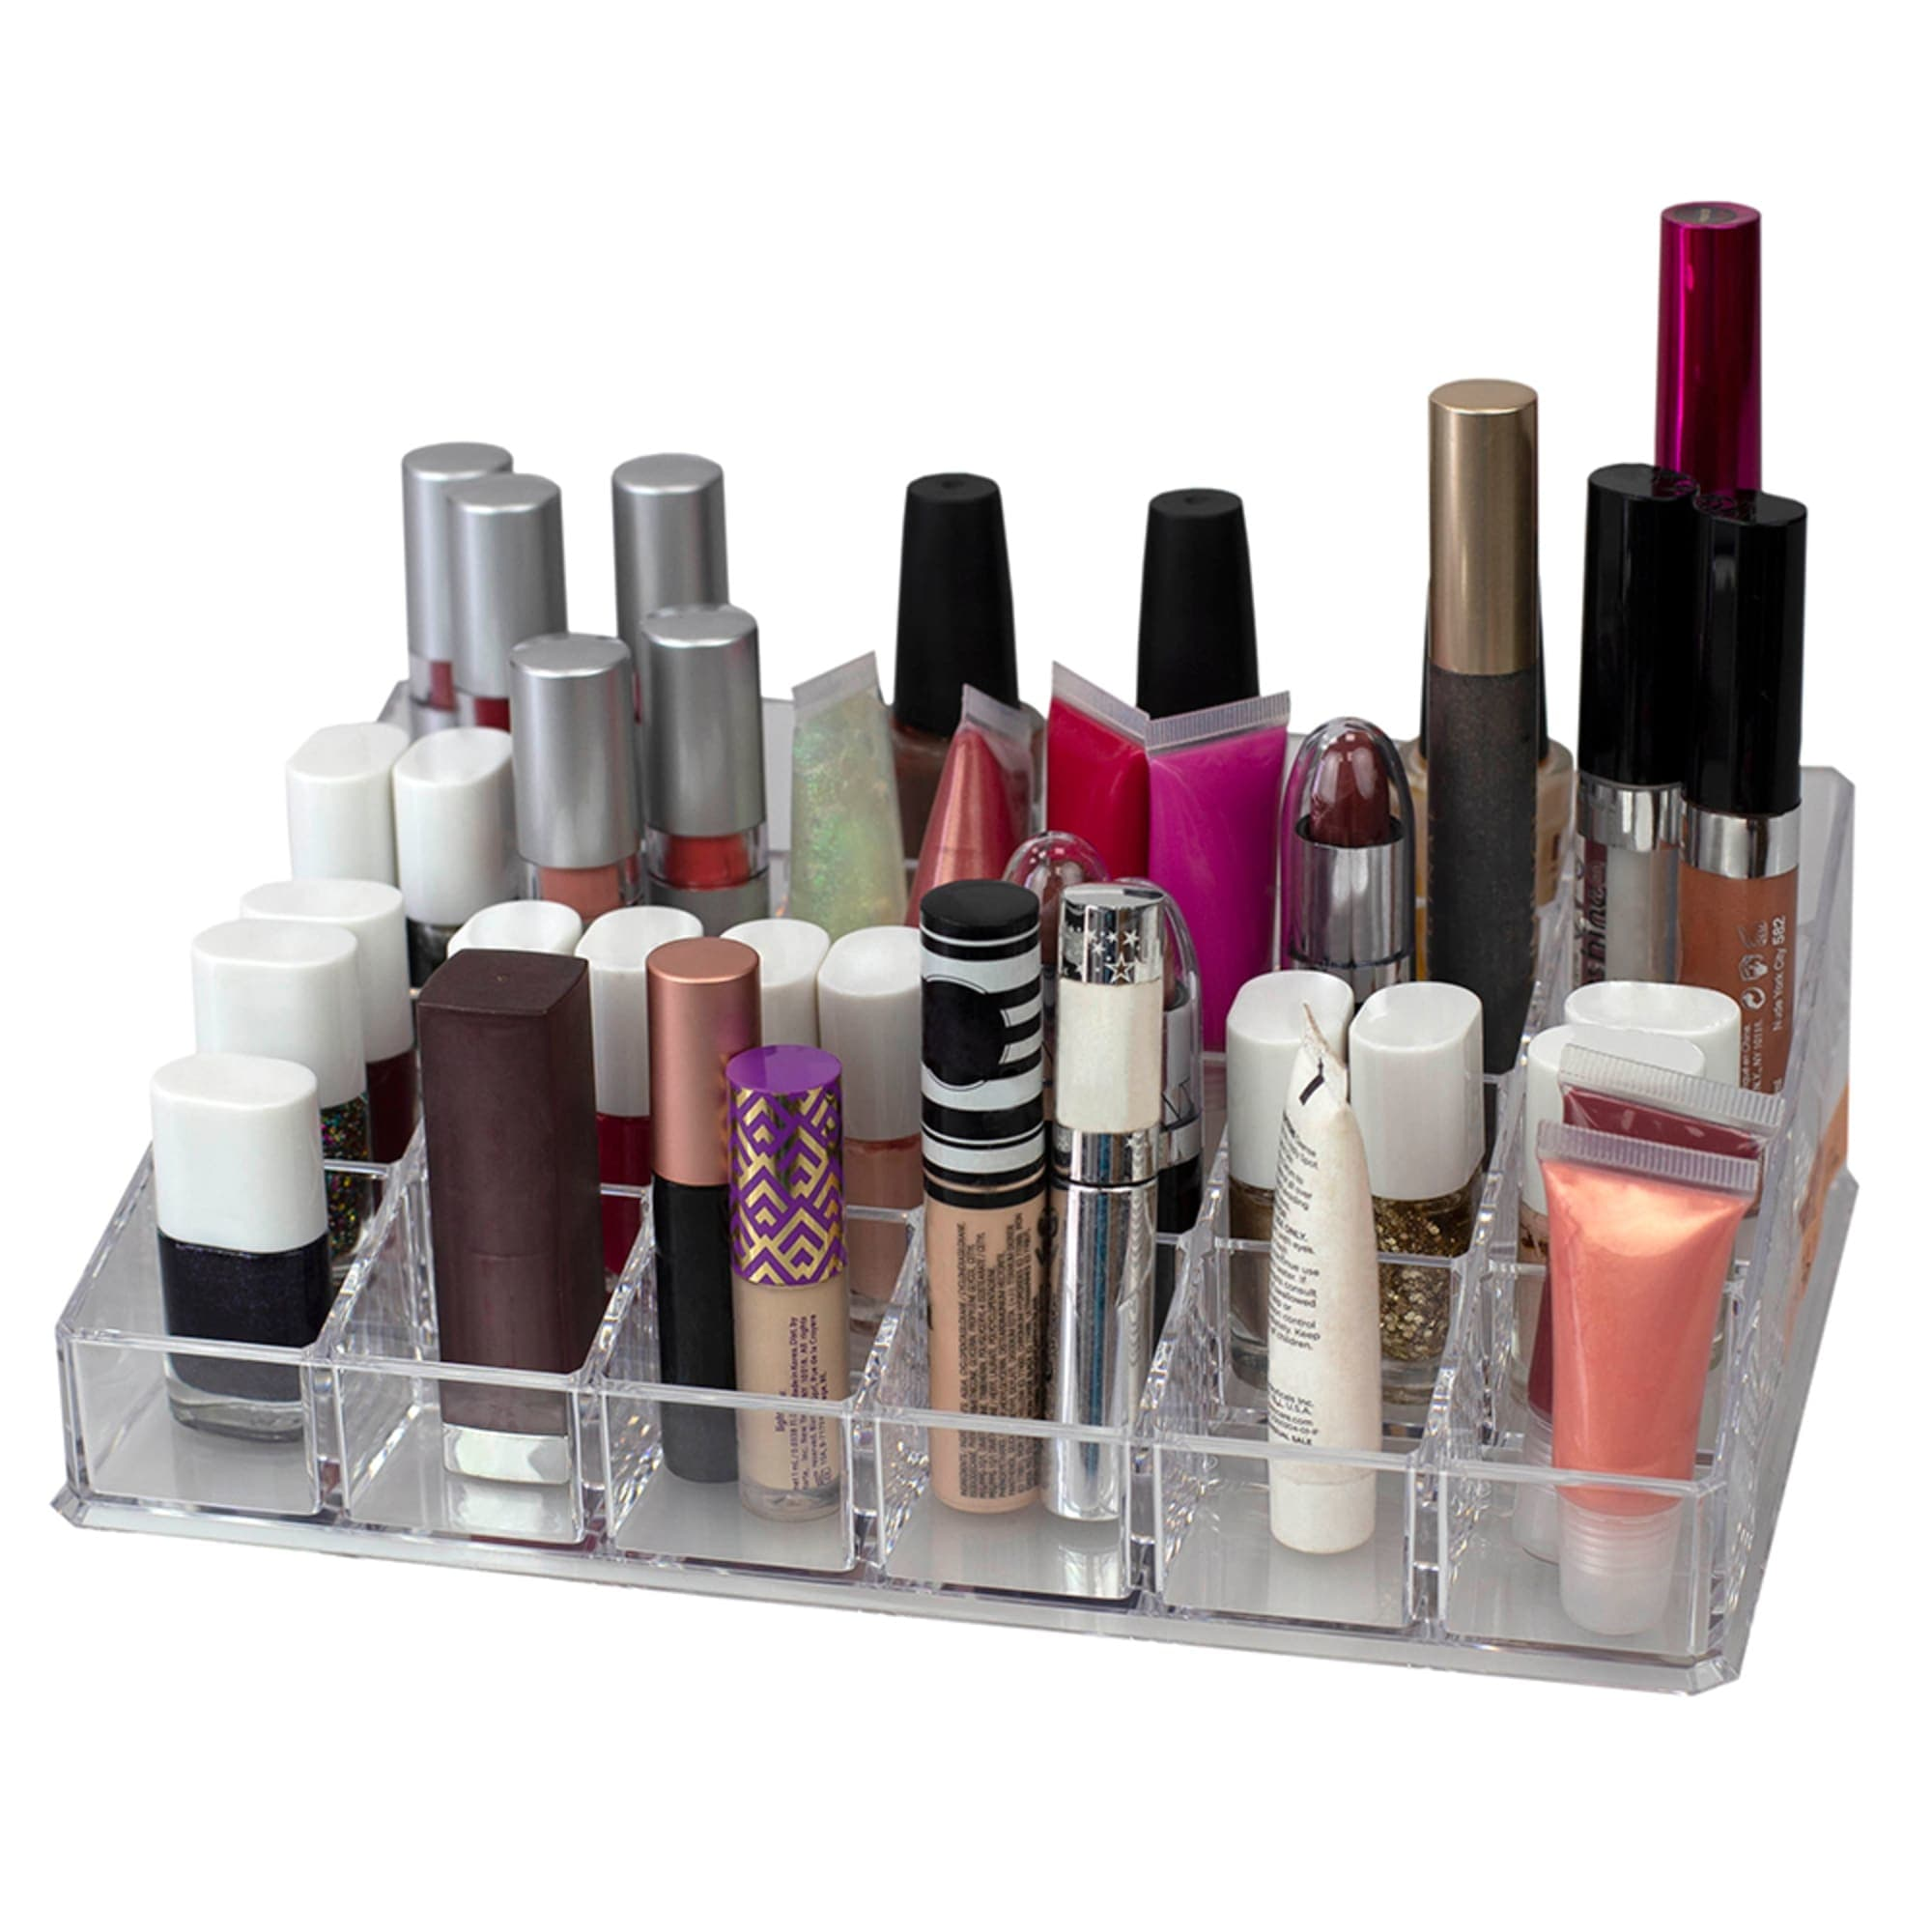 24 Compartment Transparent Plastic Cosmetic Makeup and Nail Polish Storage Organizer Holder, Clear